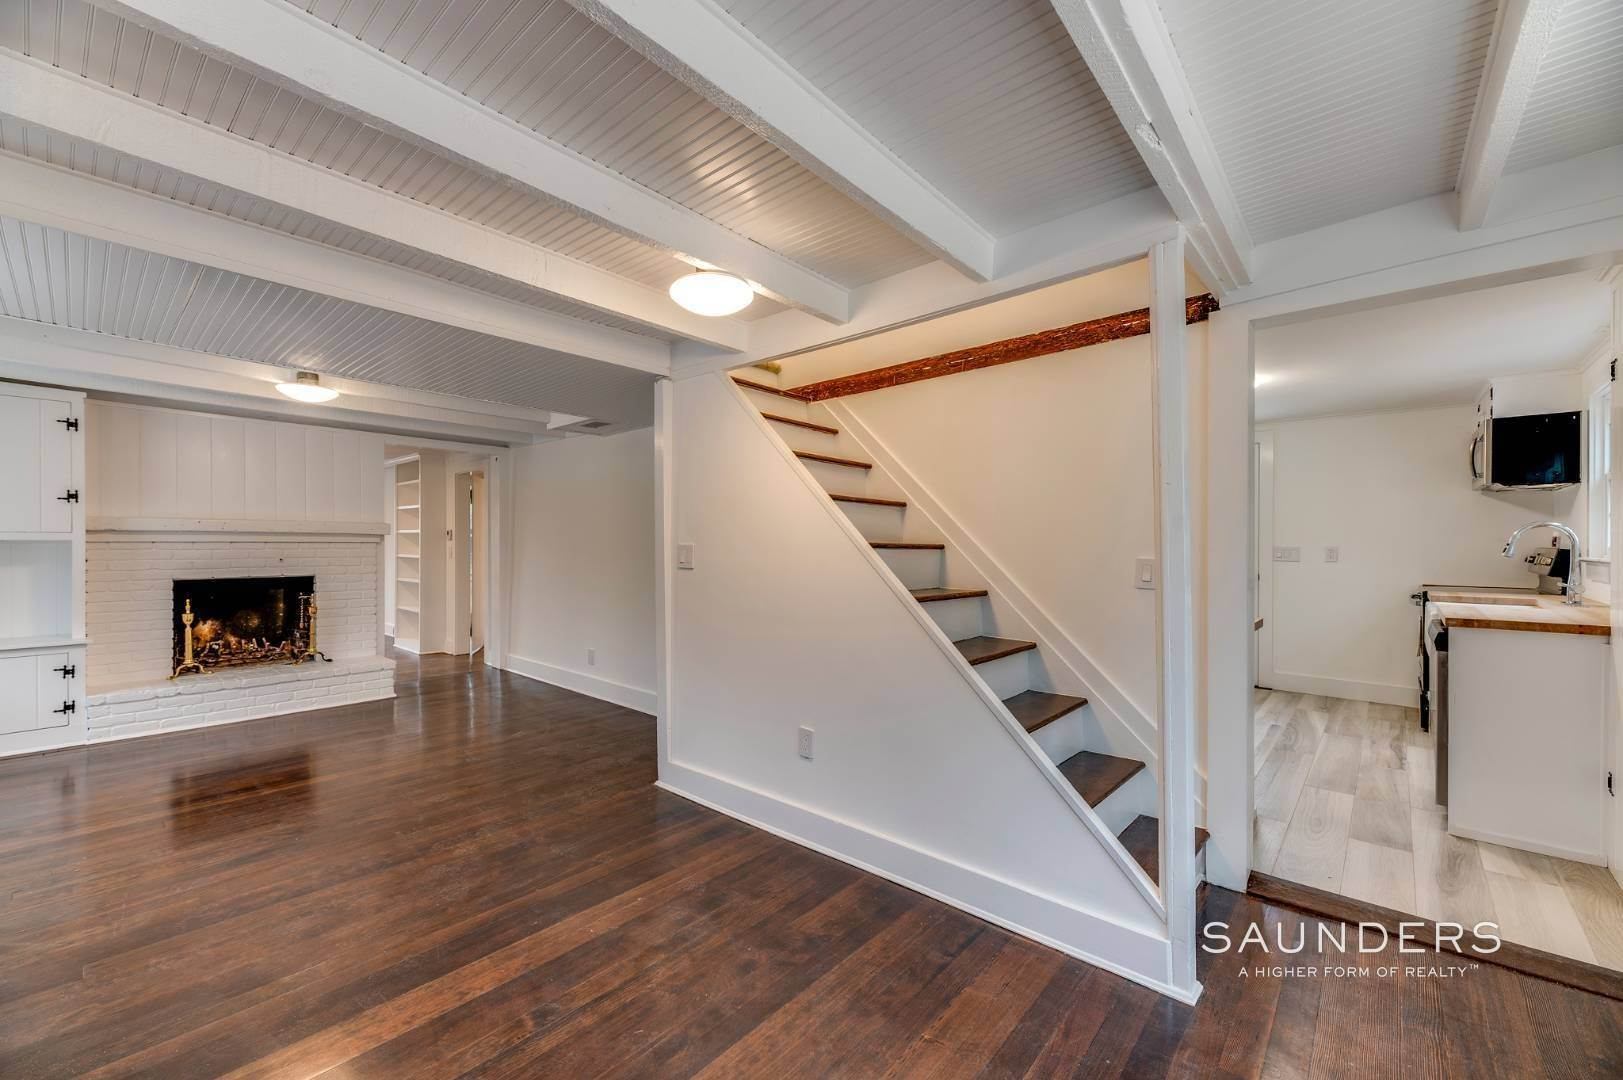 3. Single Family Homes for Sale at Renovated Farmhouse 138b Montauk Highway, Westhampton, Southampton Town, NY 11977